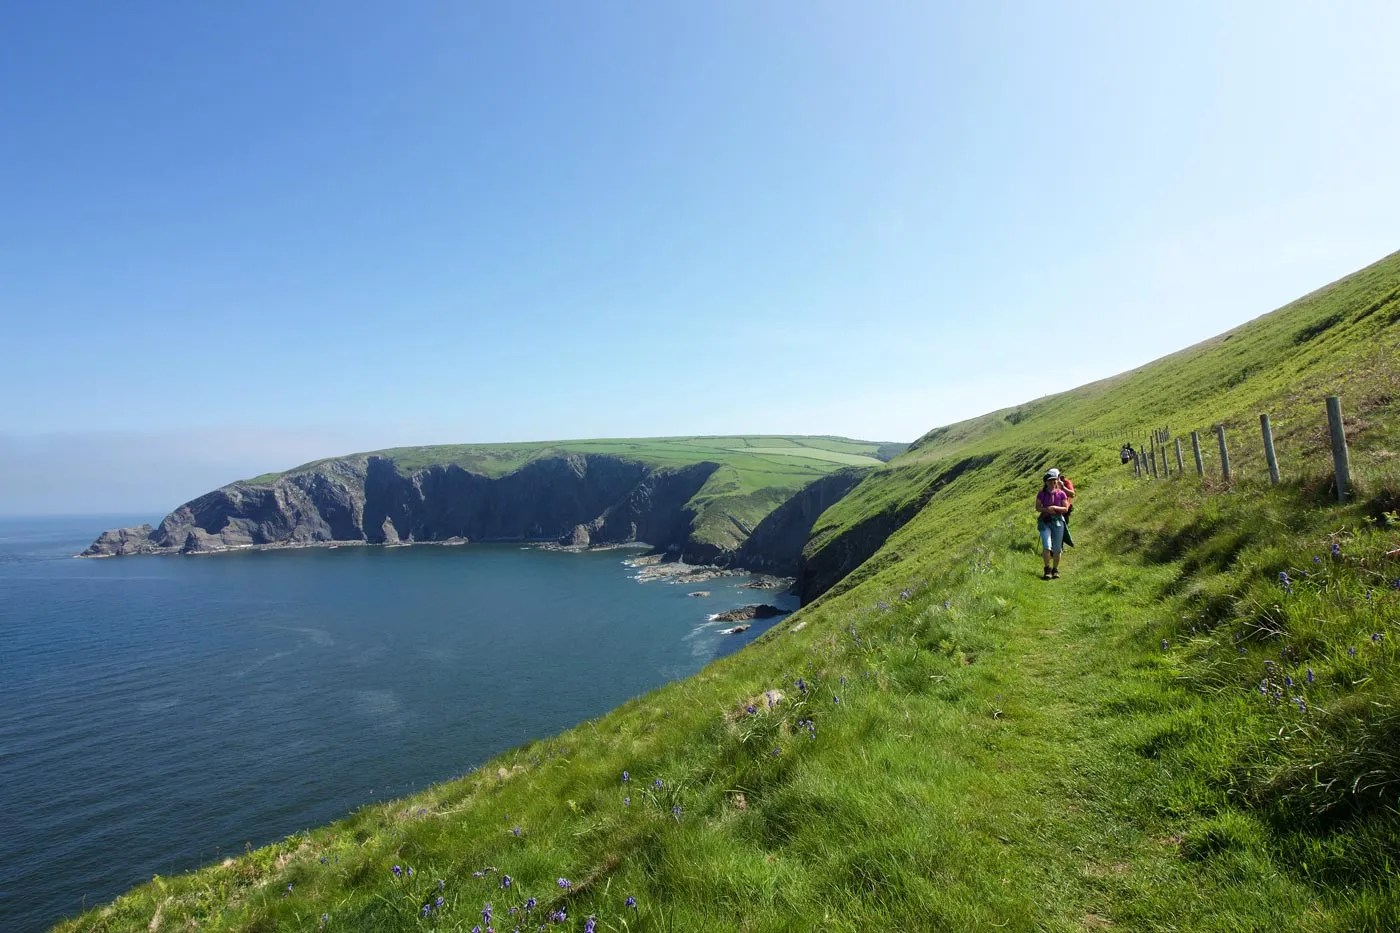 Walkers on the Pembrokeshire Coastal Footpath on a bright sunny day